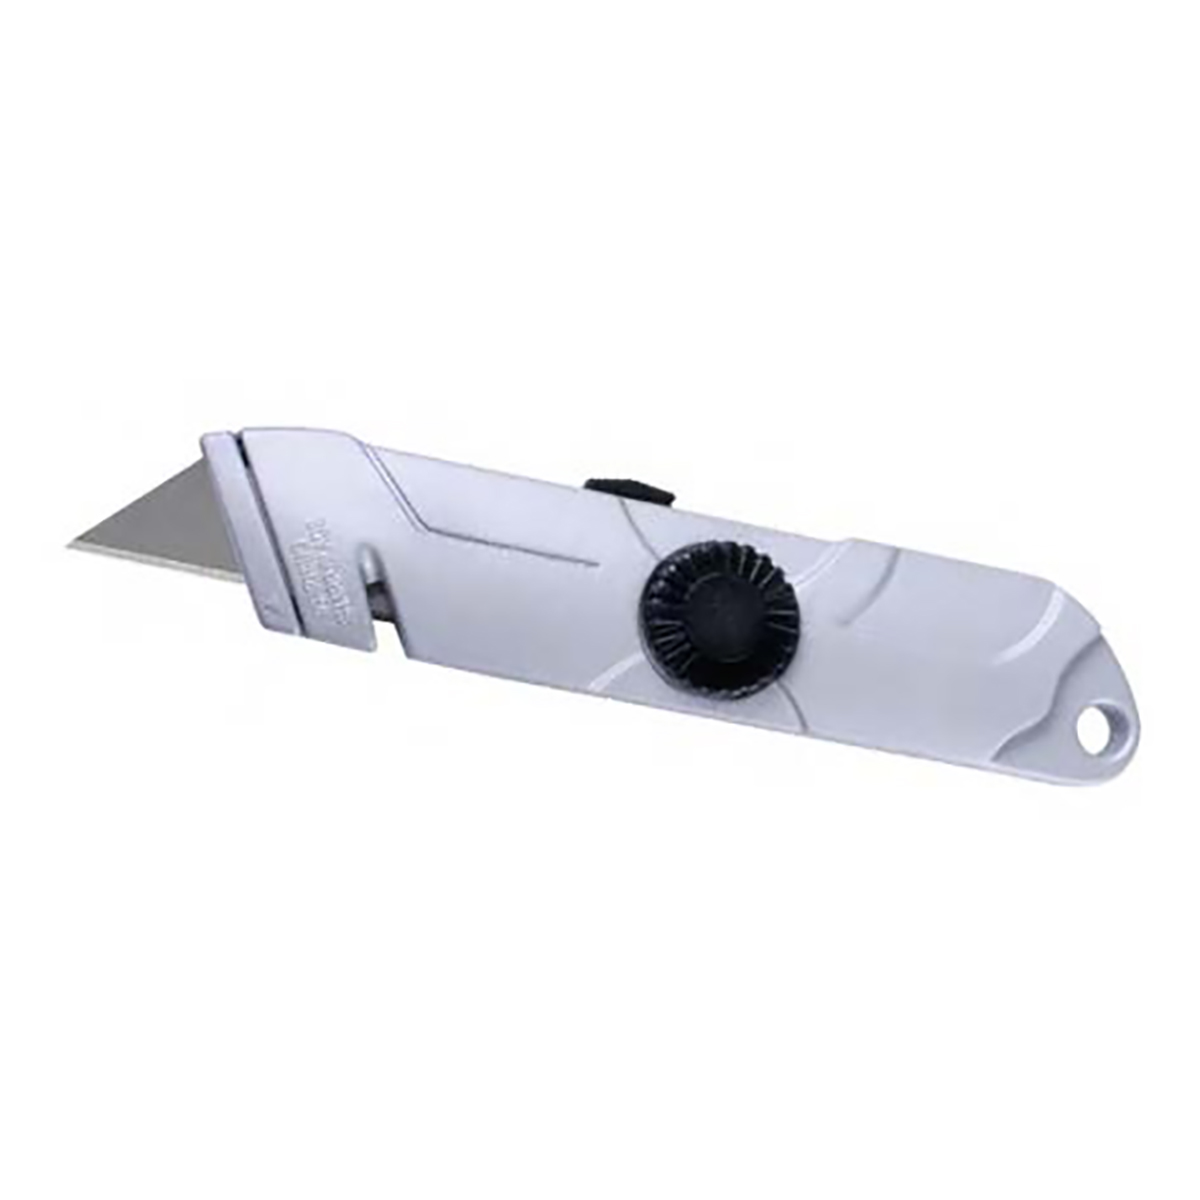 Self Retracting Utility Knife - Silver - CUT-091479